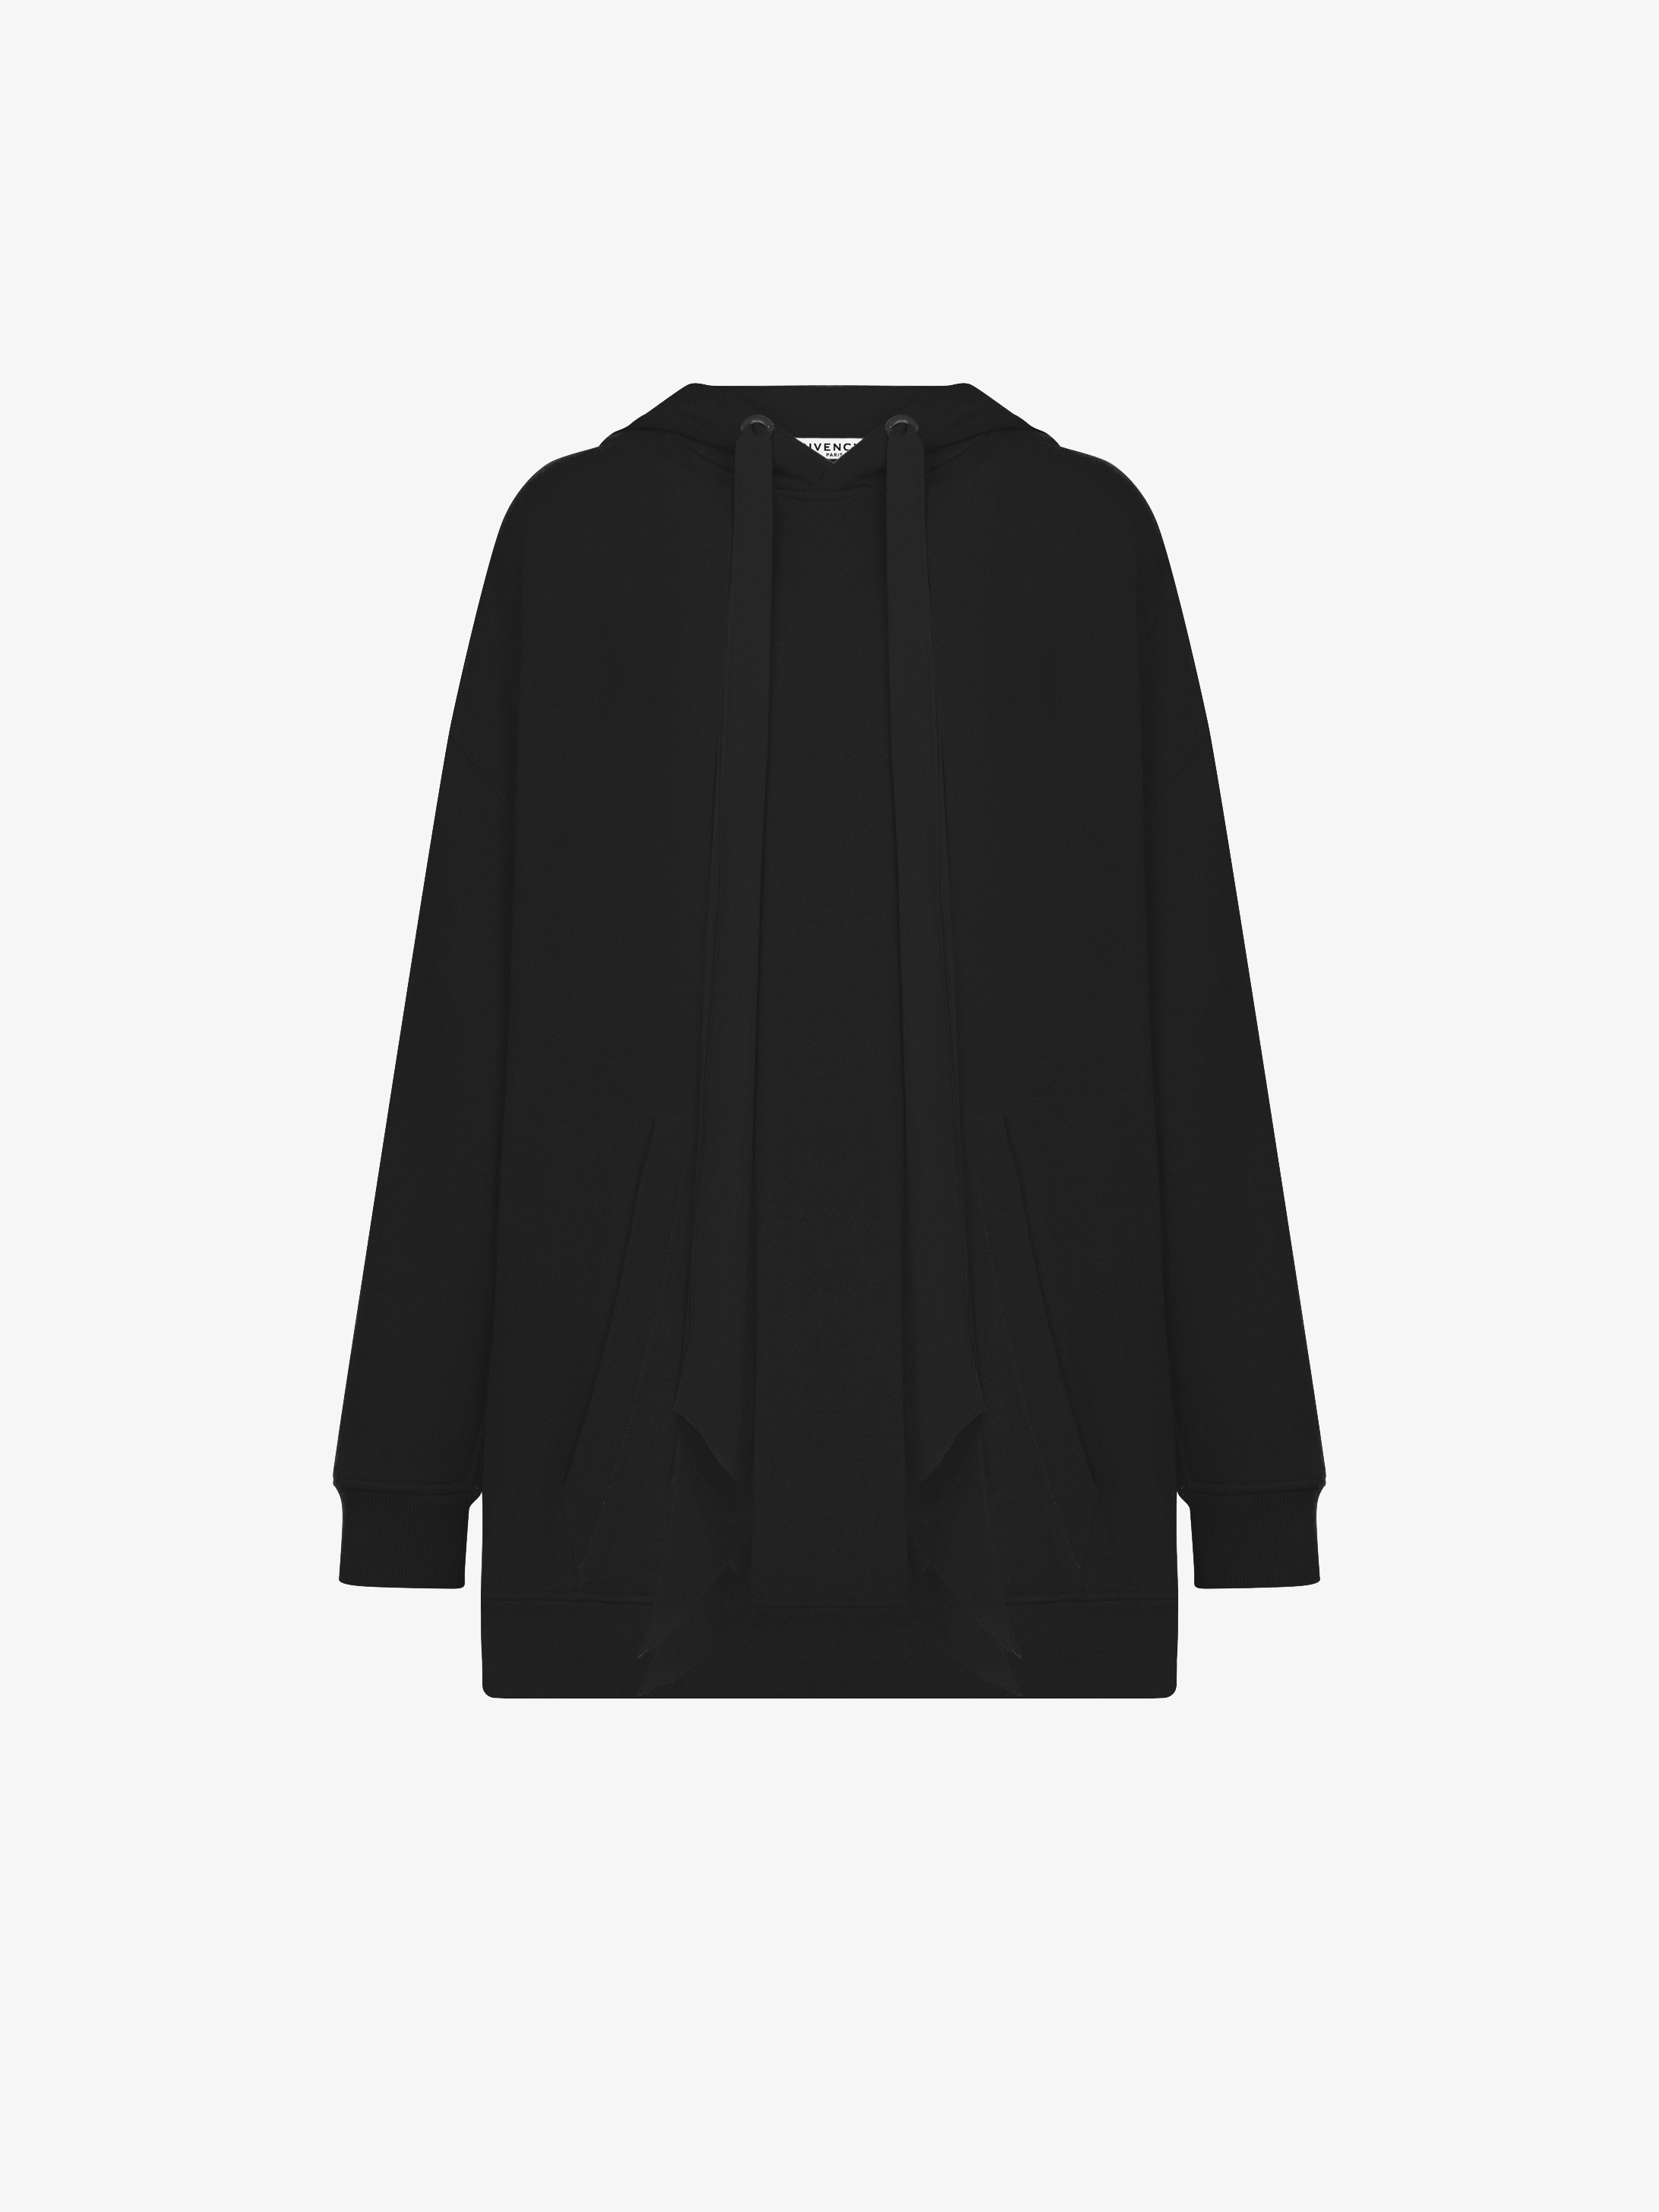 GIVENCHY PARIS oversized hoodie